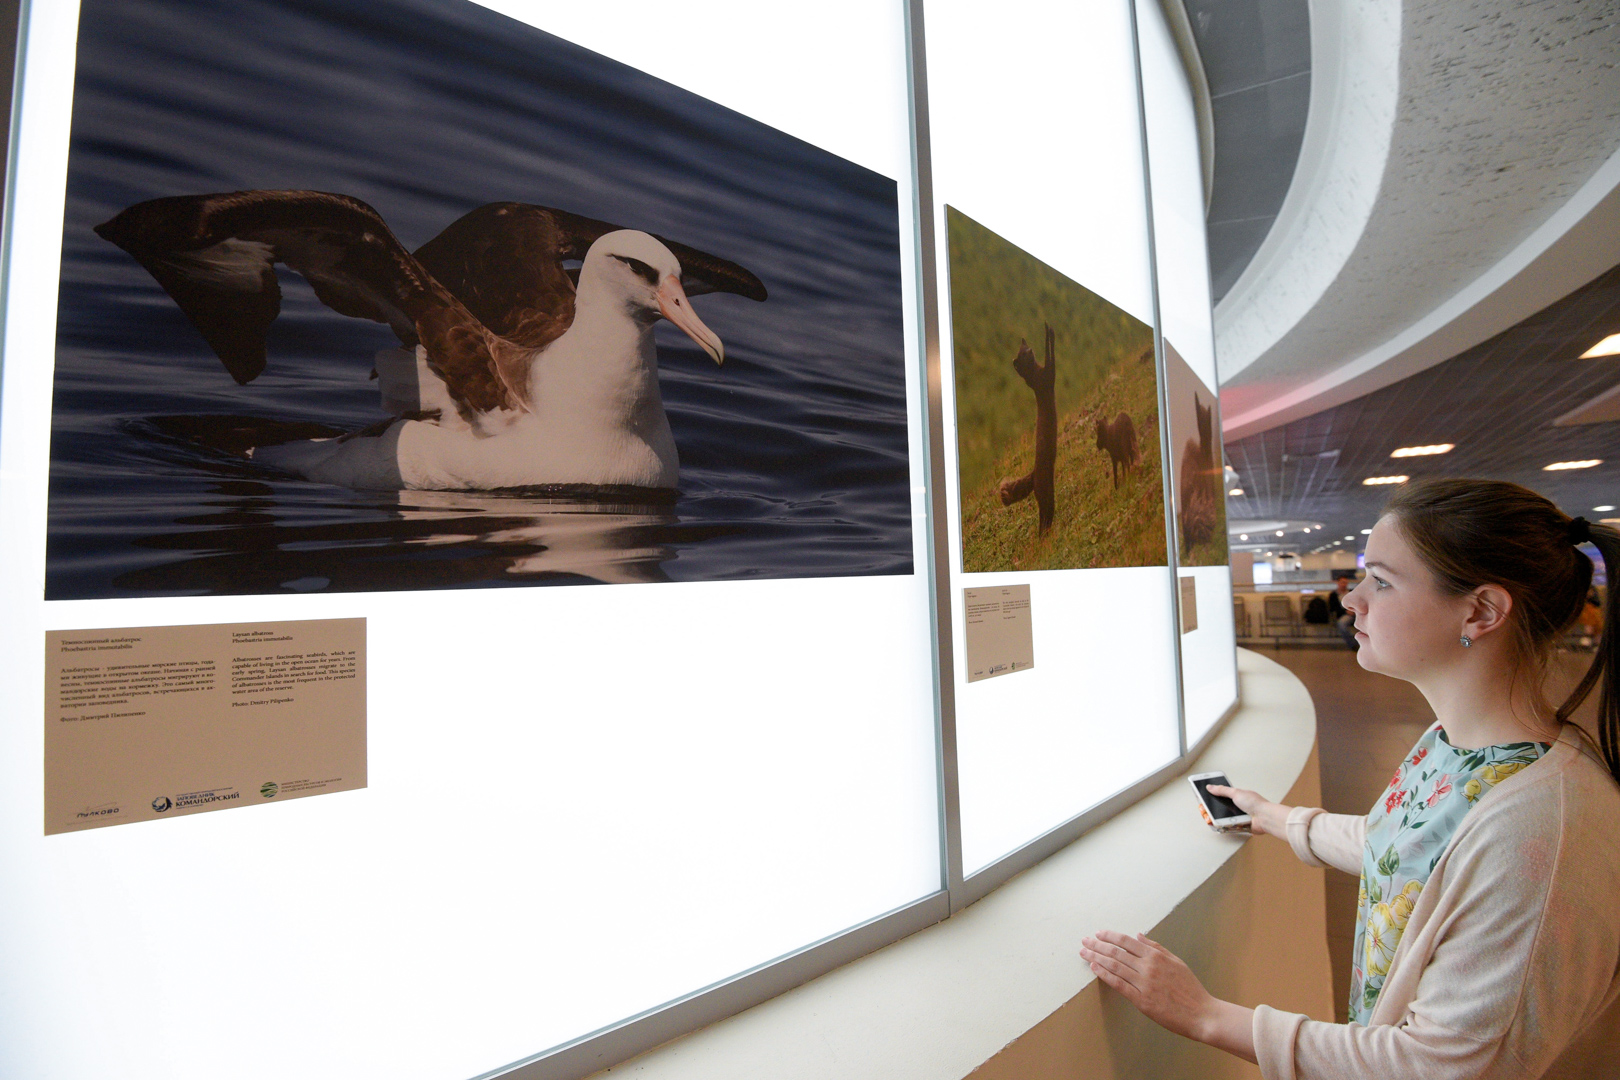 The Commander Islands Nature Reserve Photo Show in Pulkovo Extended